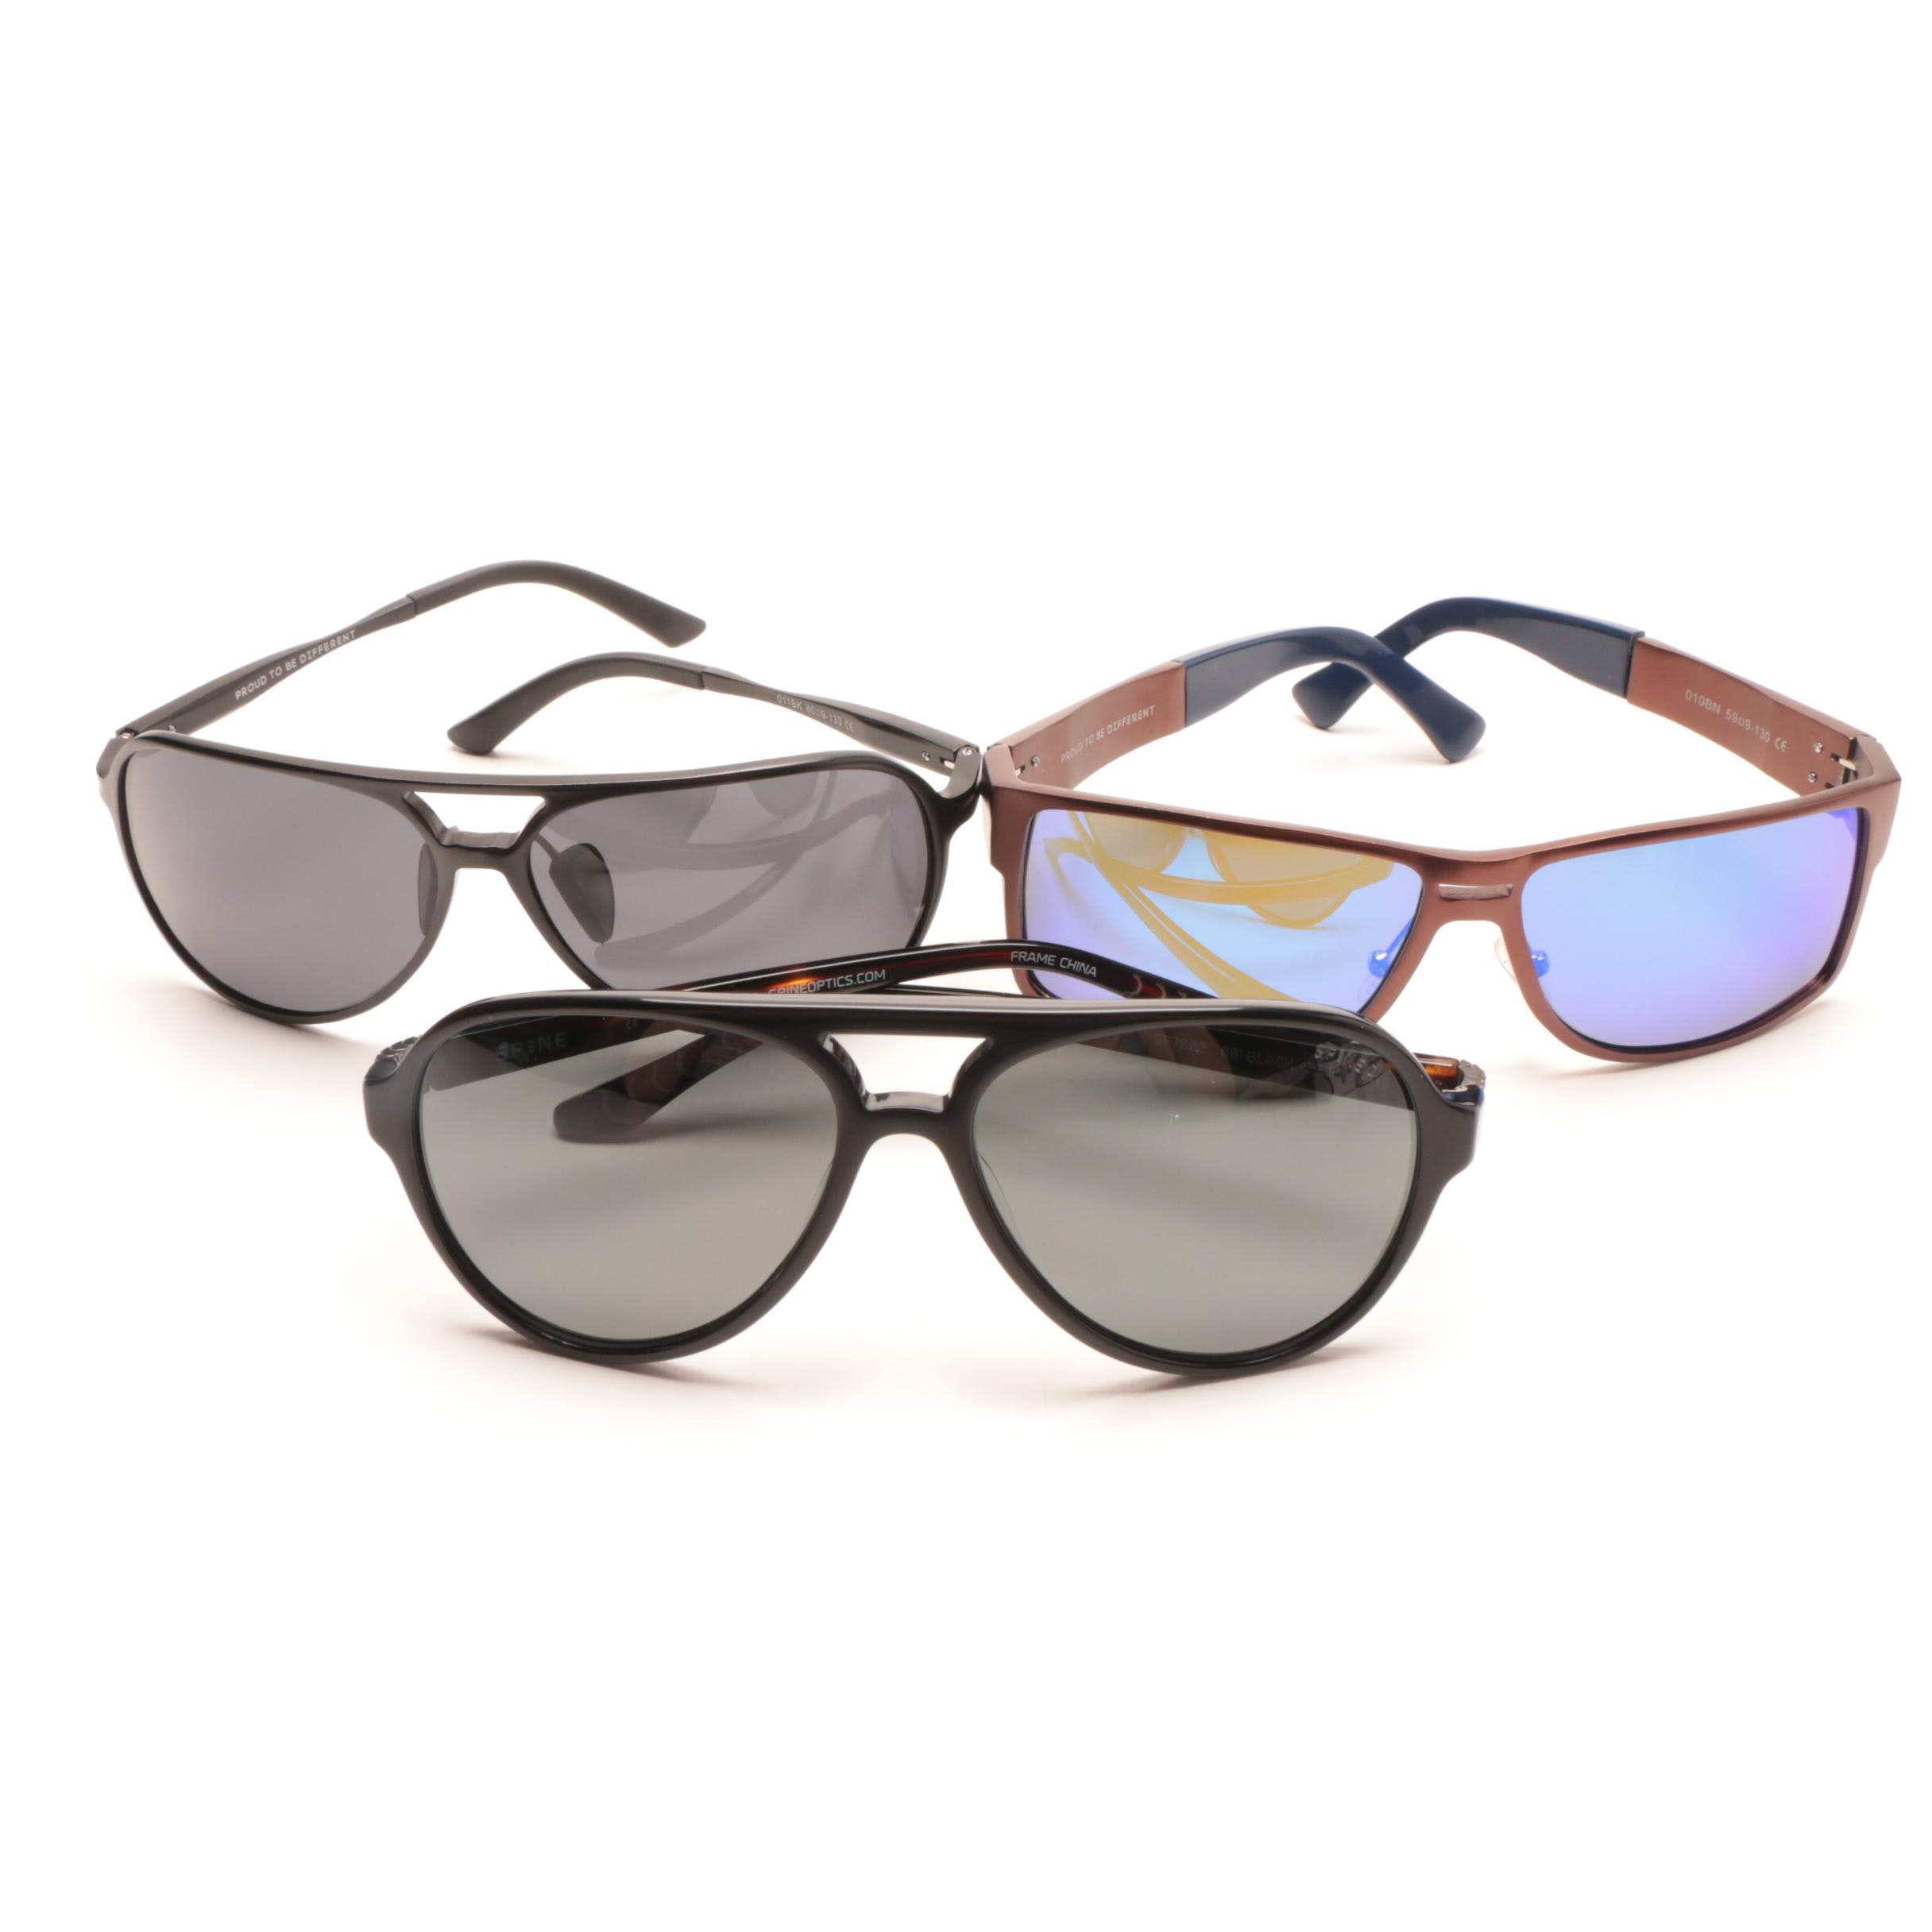 Breed and Spine Sunglasses